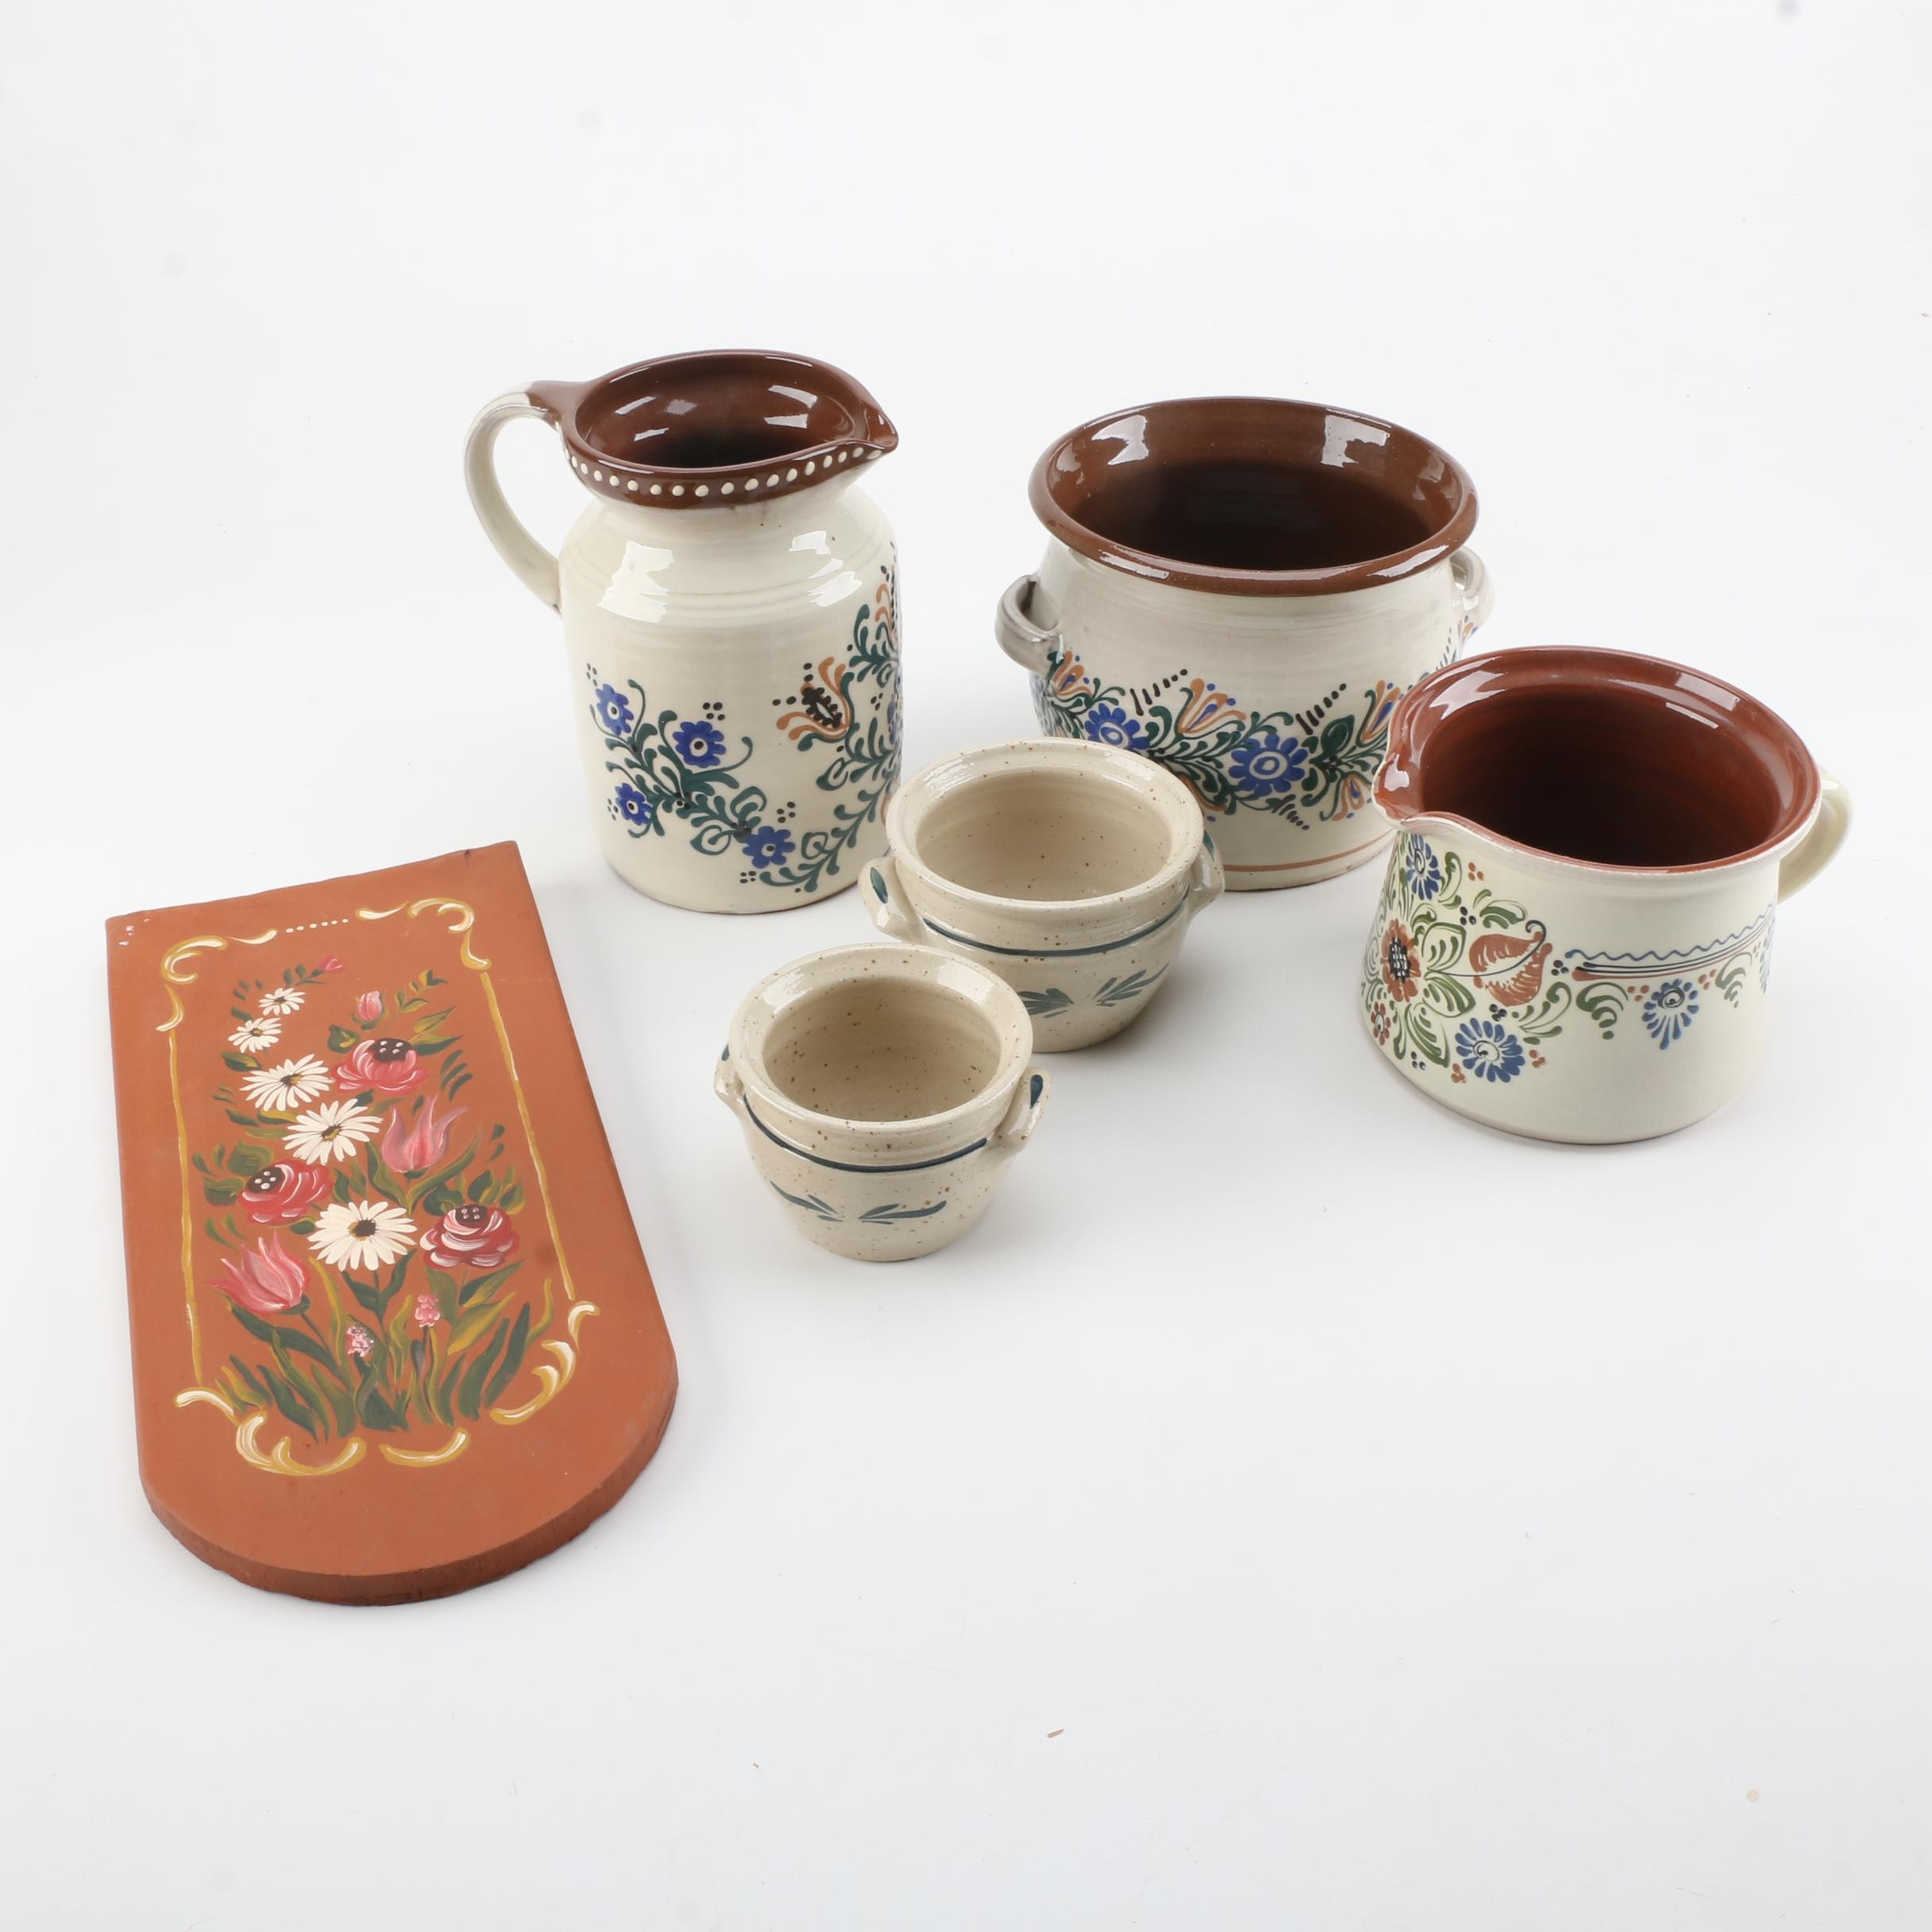 Pottery Serving Ware and Decor